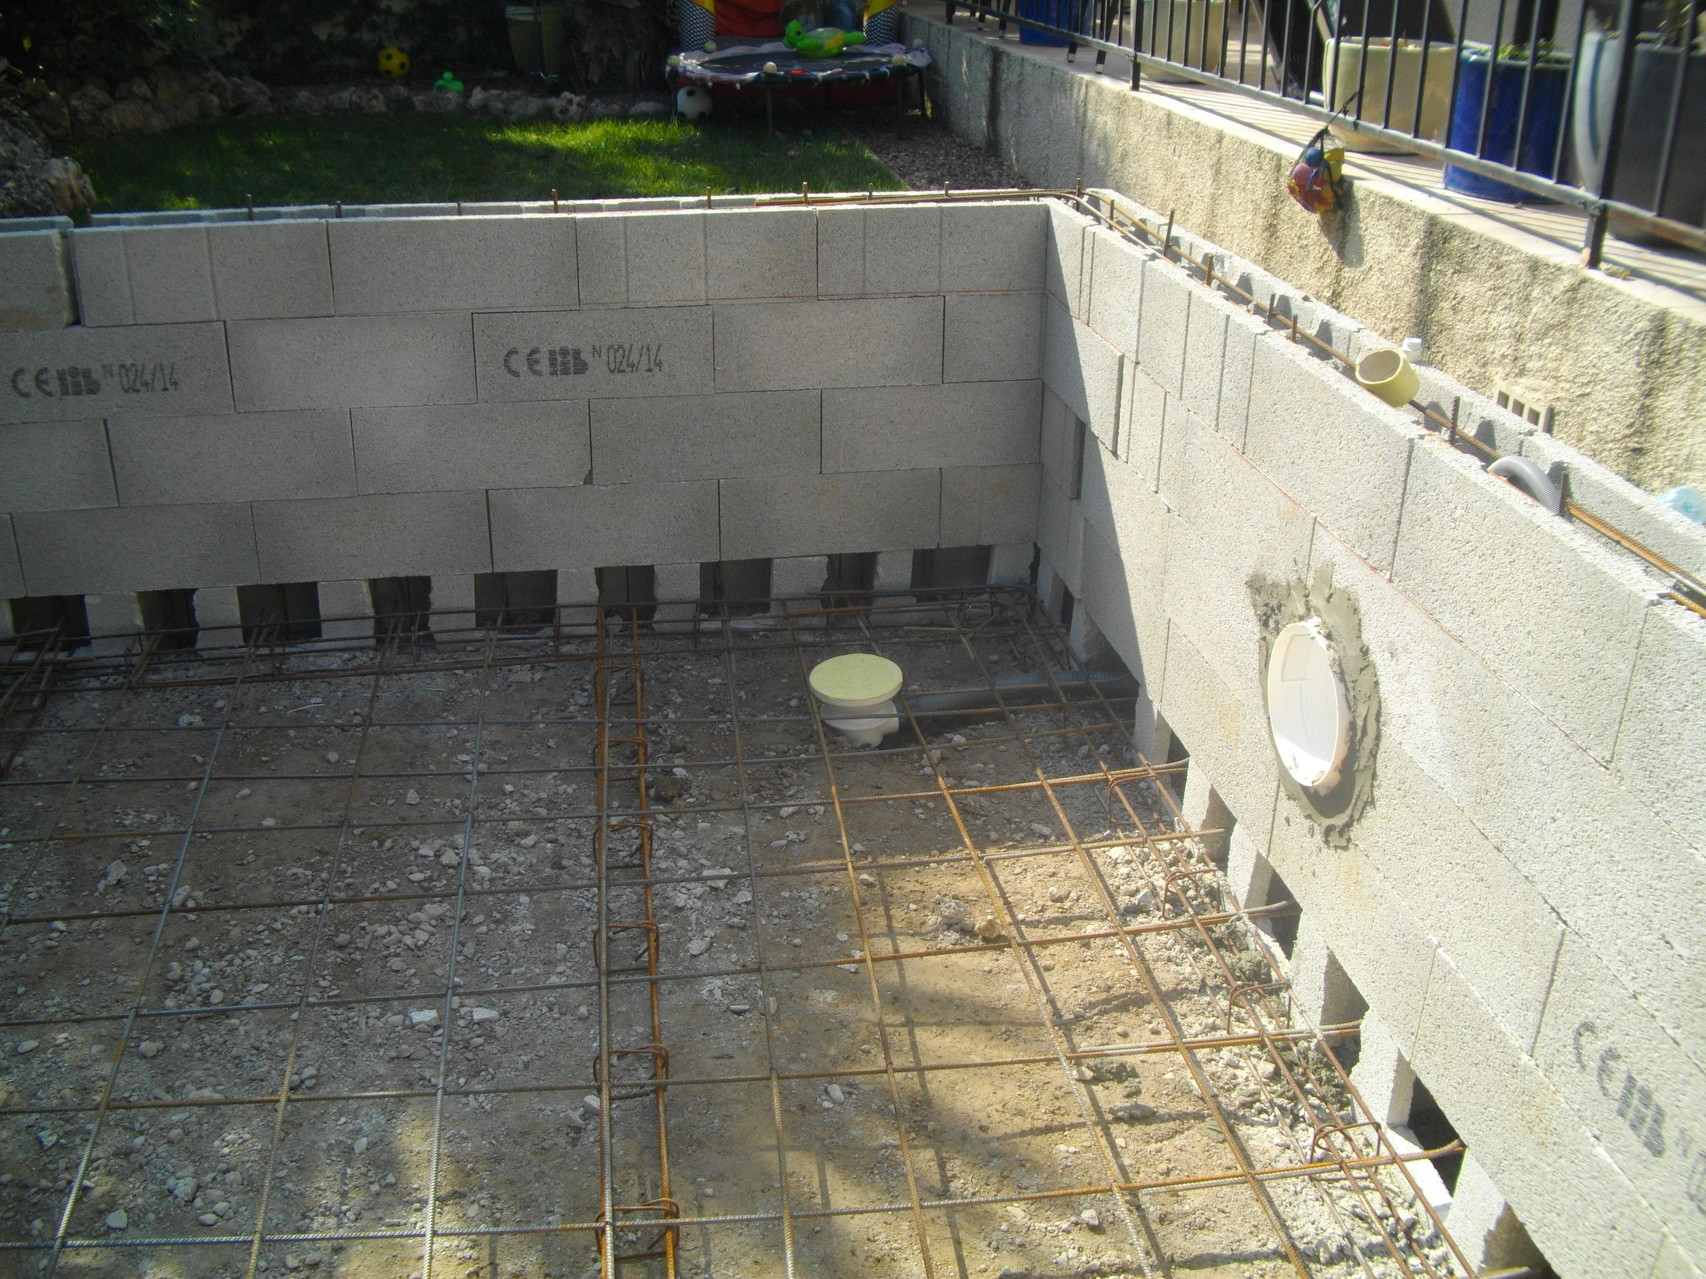 Constructeur de piscines et spas 0660978914 piscine kachou for Construction piscine 91